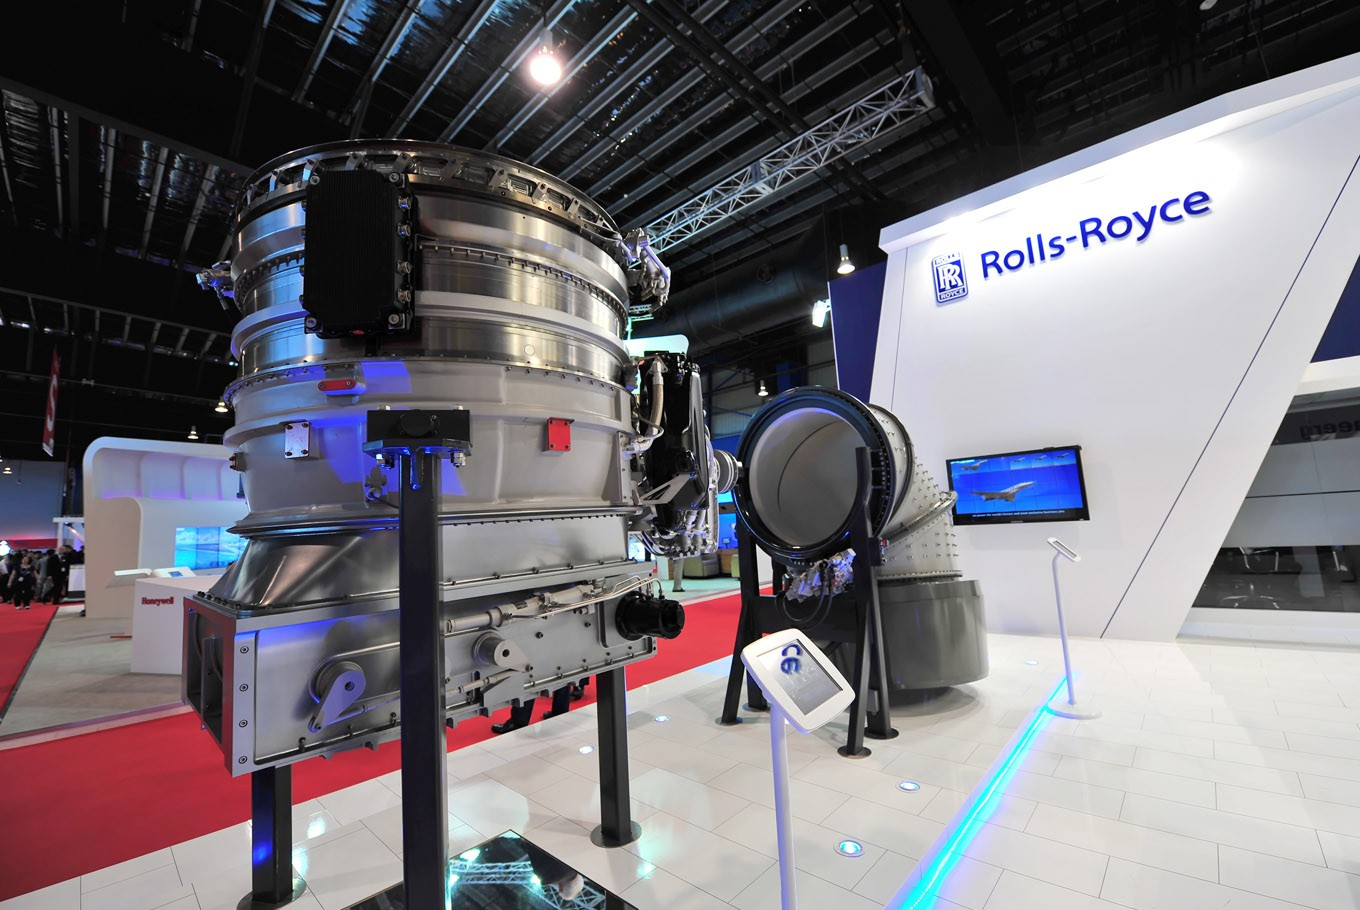 British Engine Maker Rolls-Royce Cutting 4,600 Jobs